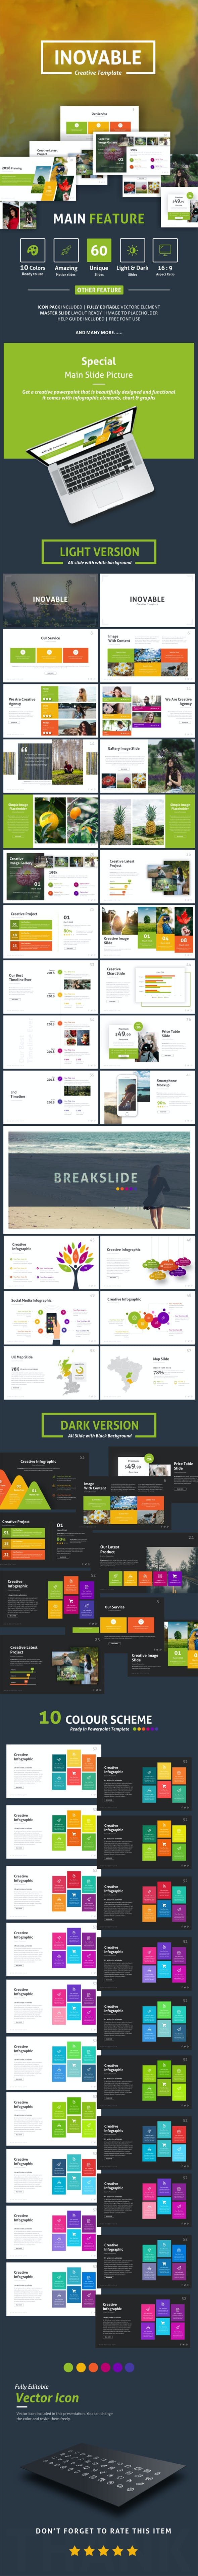 inovable creative presentation template by rrgraph graphicriver